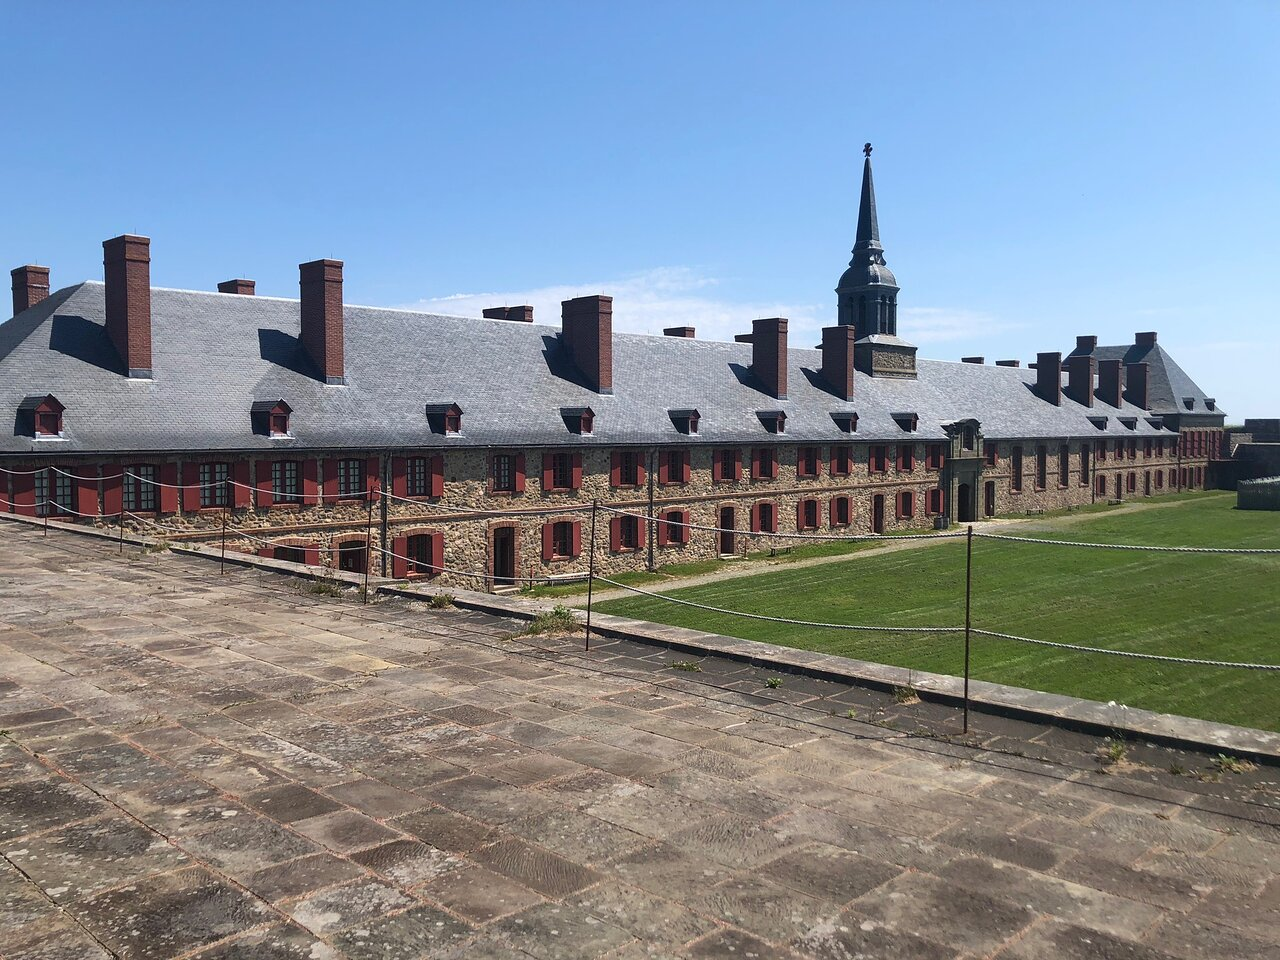 Fortress Of Louisbourg National Historic Site Updated 2020 All You Need To Know Before You Go With Photos